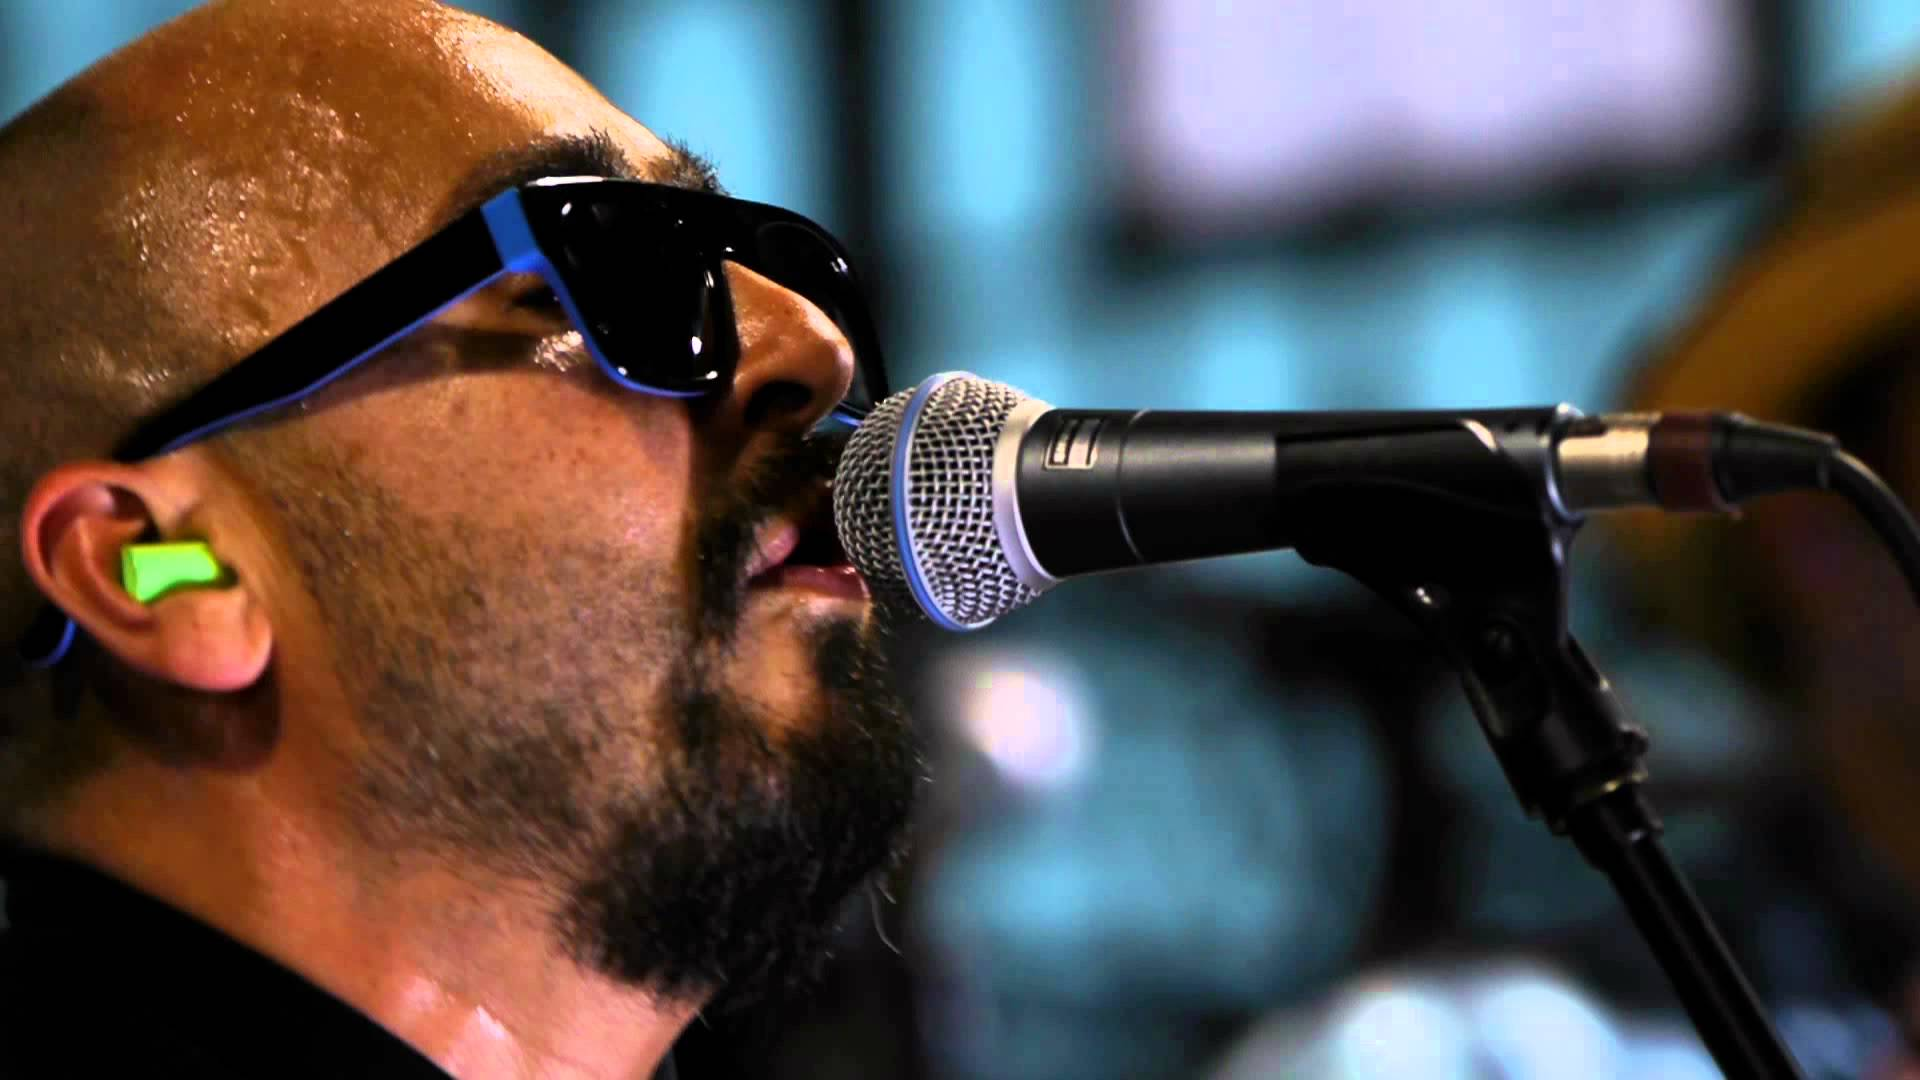 This week's Dave Stewart collaboration : Ozomatli on the track Brighter from their album Ozomatli